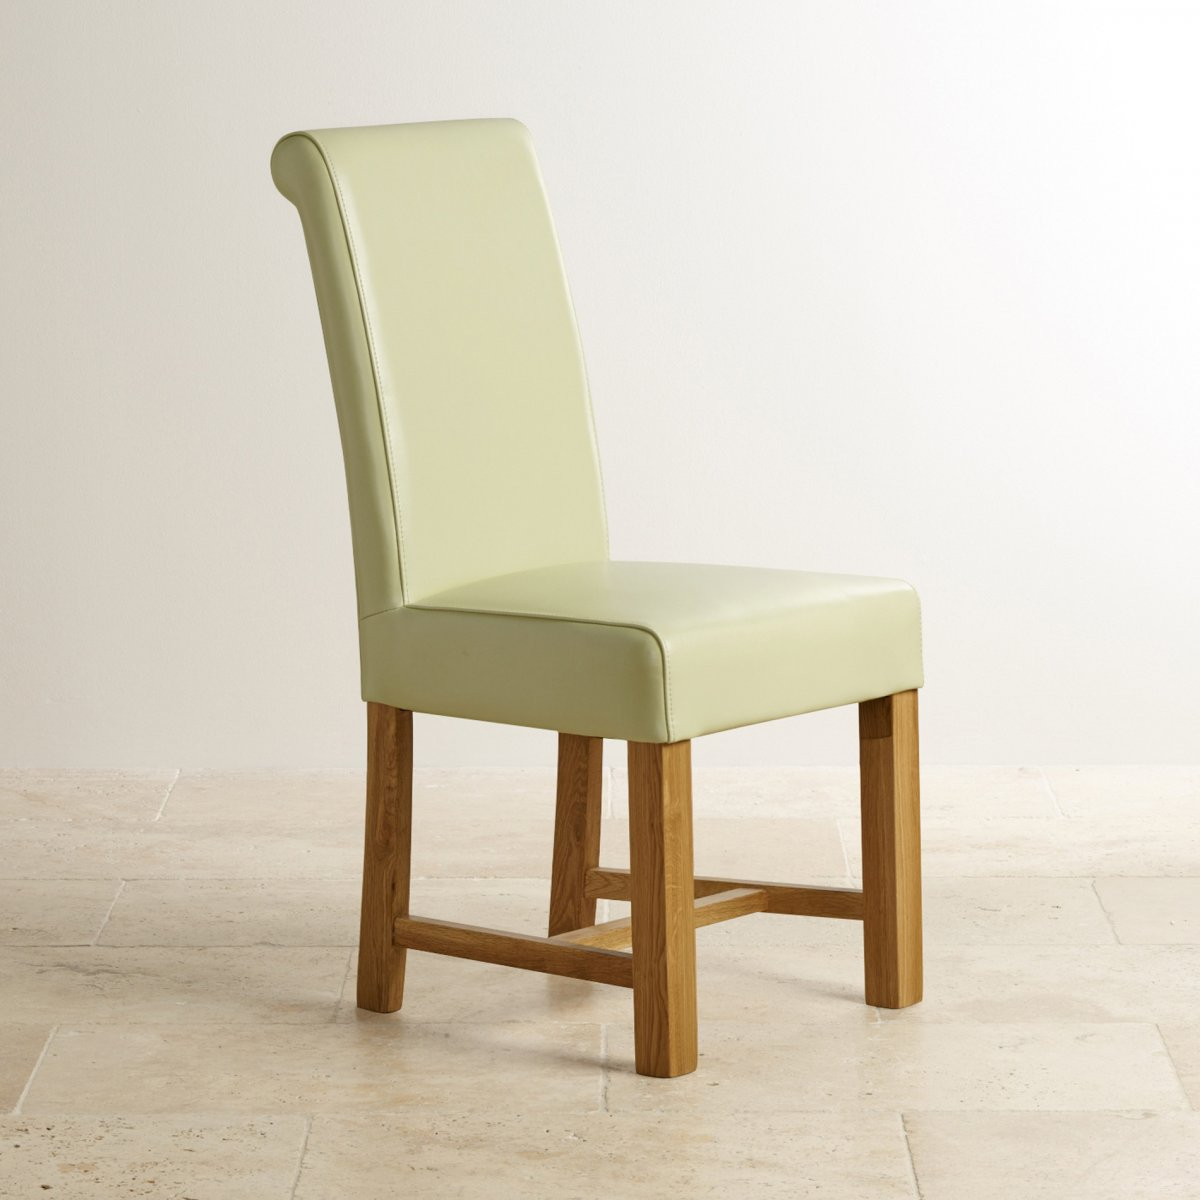 Braced Scroll Back Chair   Cream Leather With Solid Oak Legs Design Inspirations